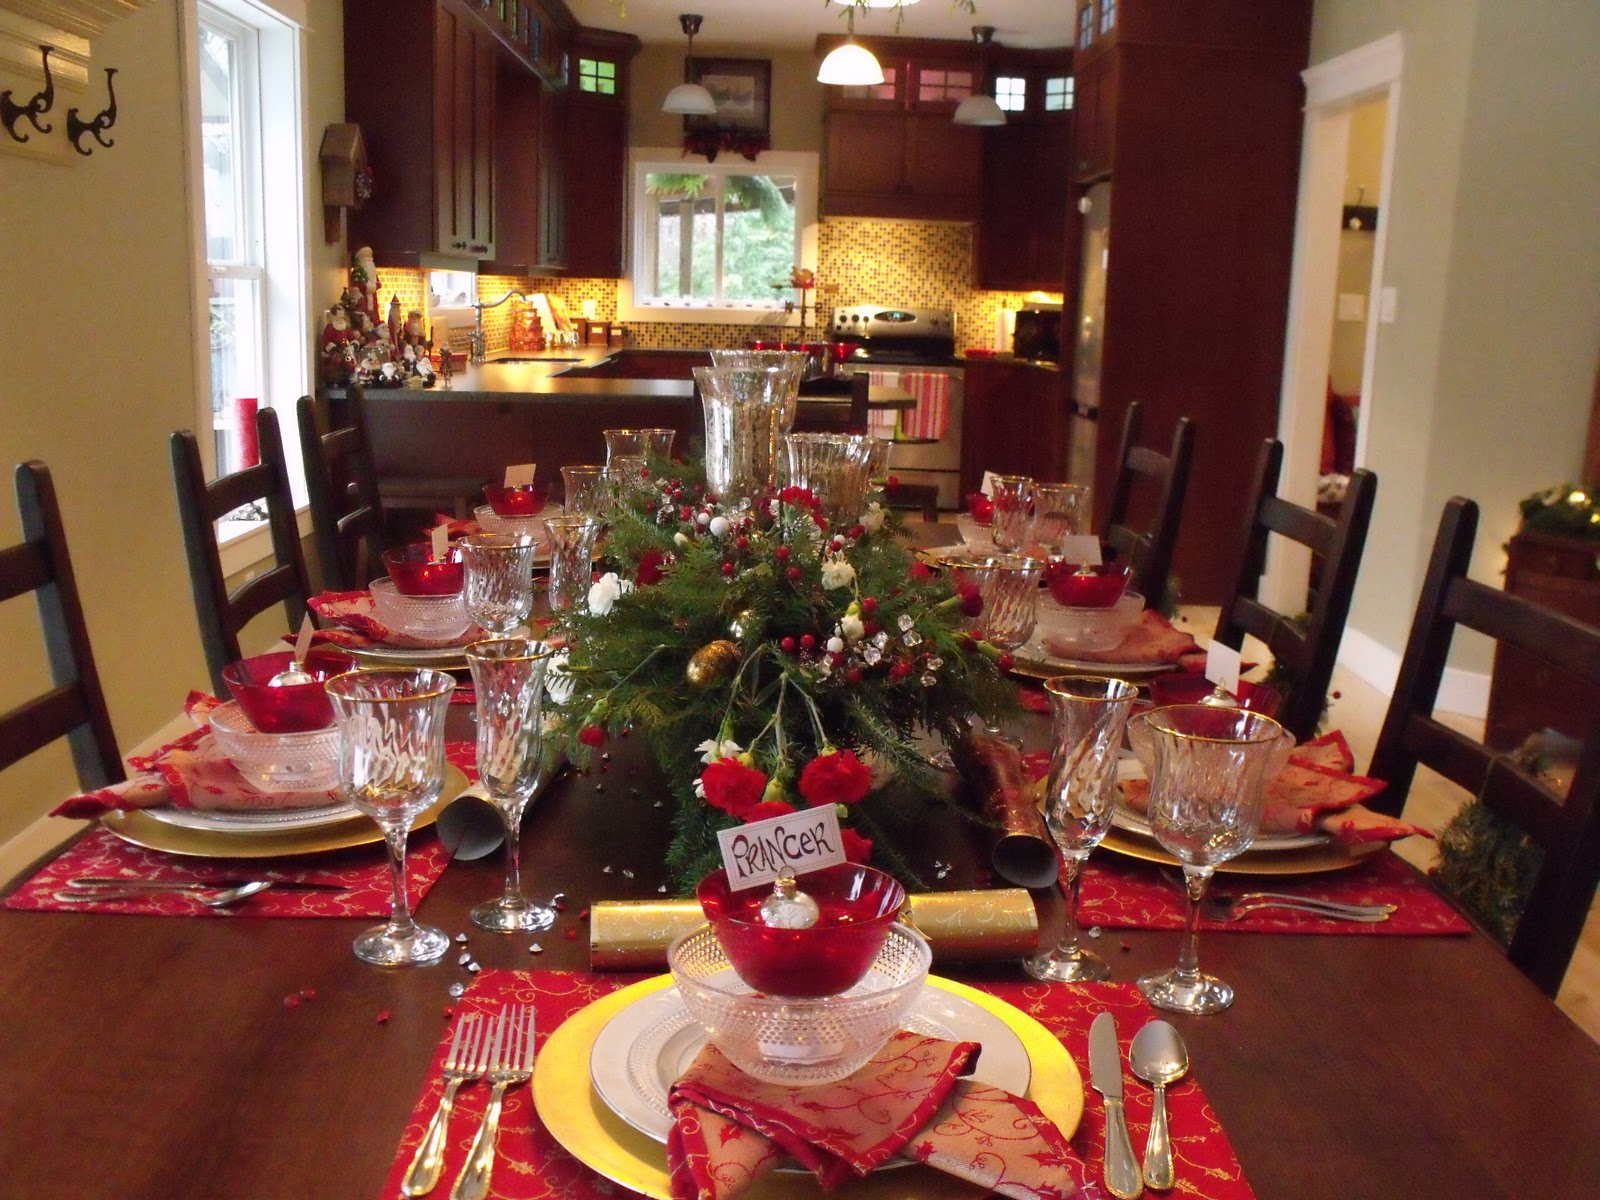 Design ideas dining room at Christmas with family